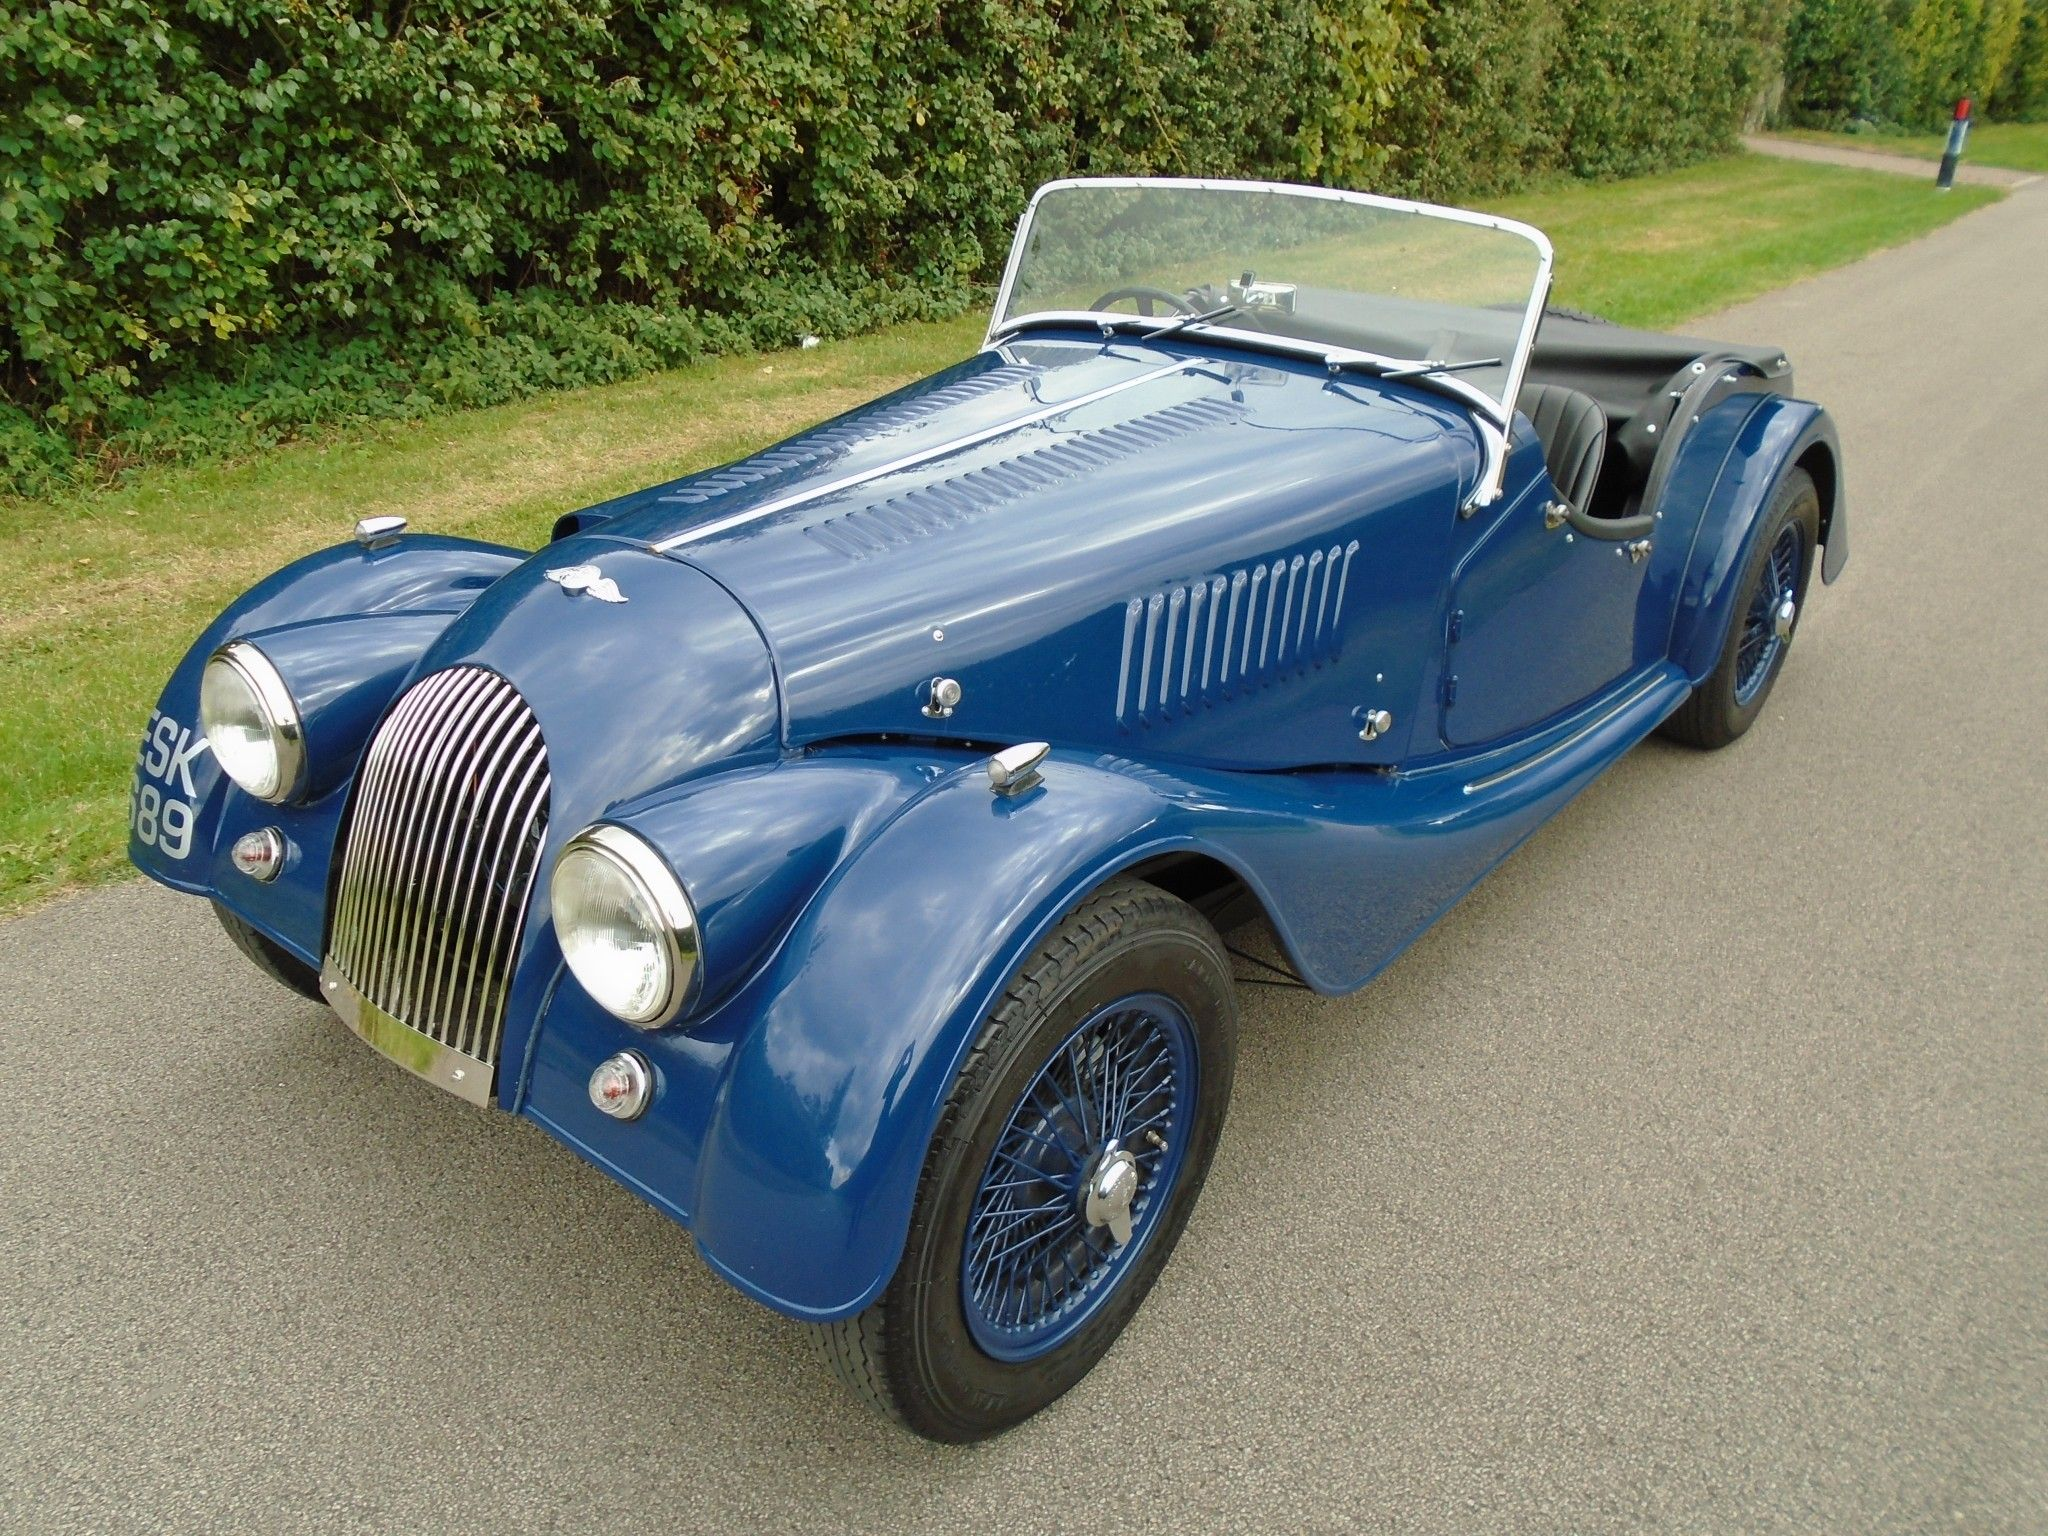 https://allonwhite.co.uk/used-morgan-cars-for-sale-uk/1959-morgan ...